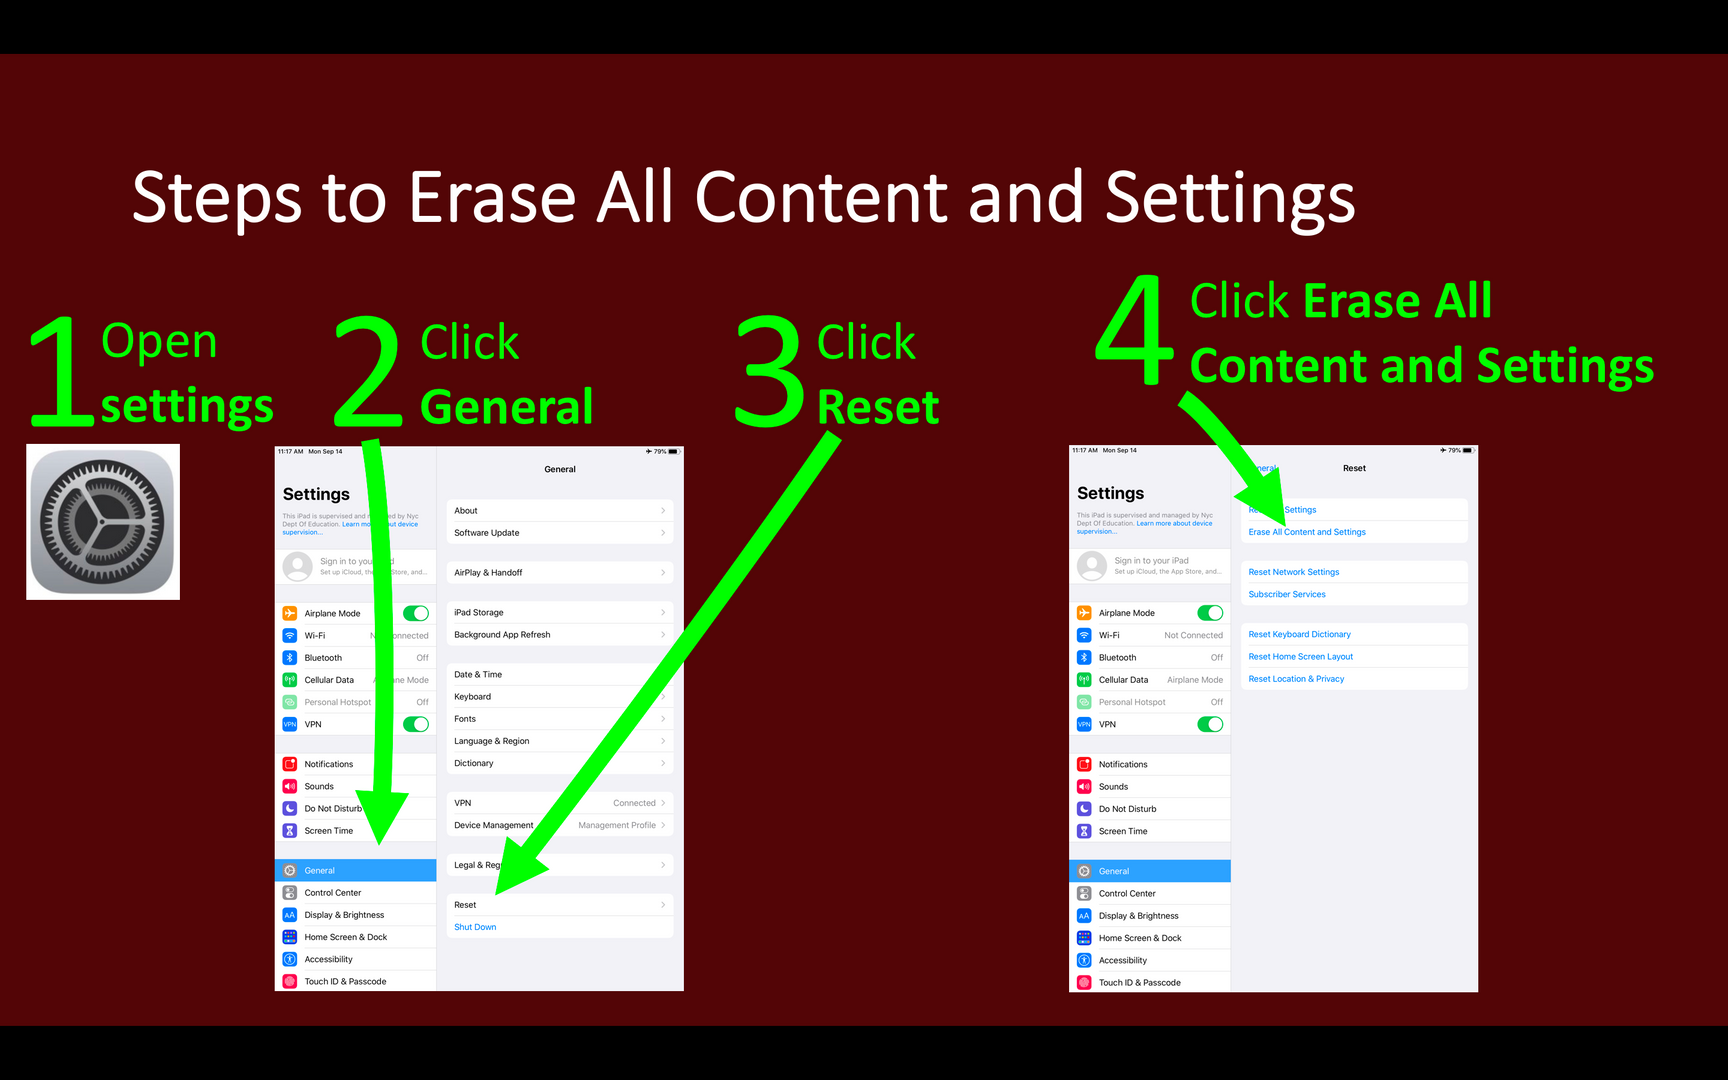 Steps to Erase All Content and Settings